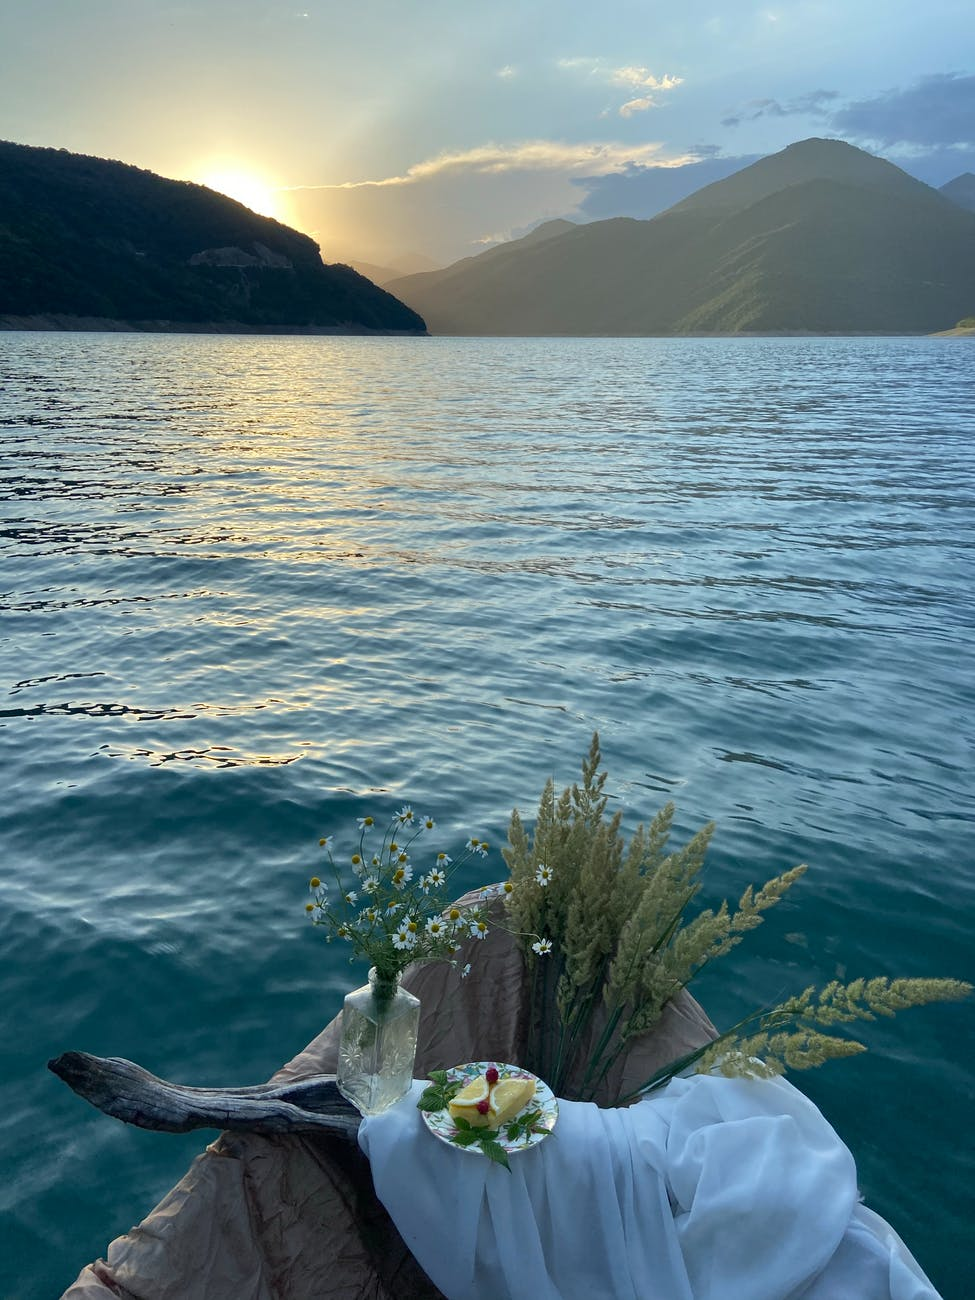 boat with vase of flowers and dried grass on lake